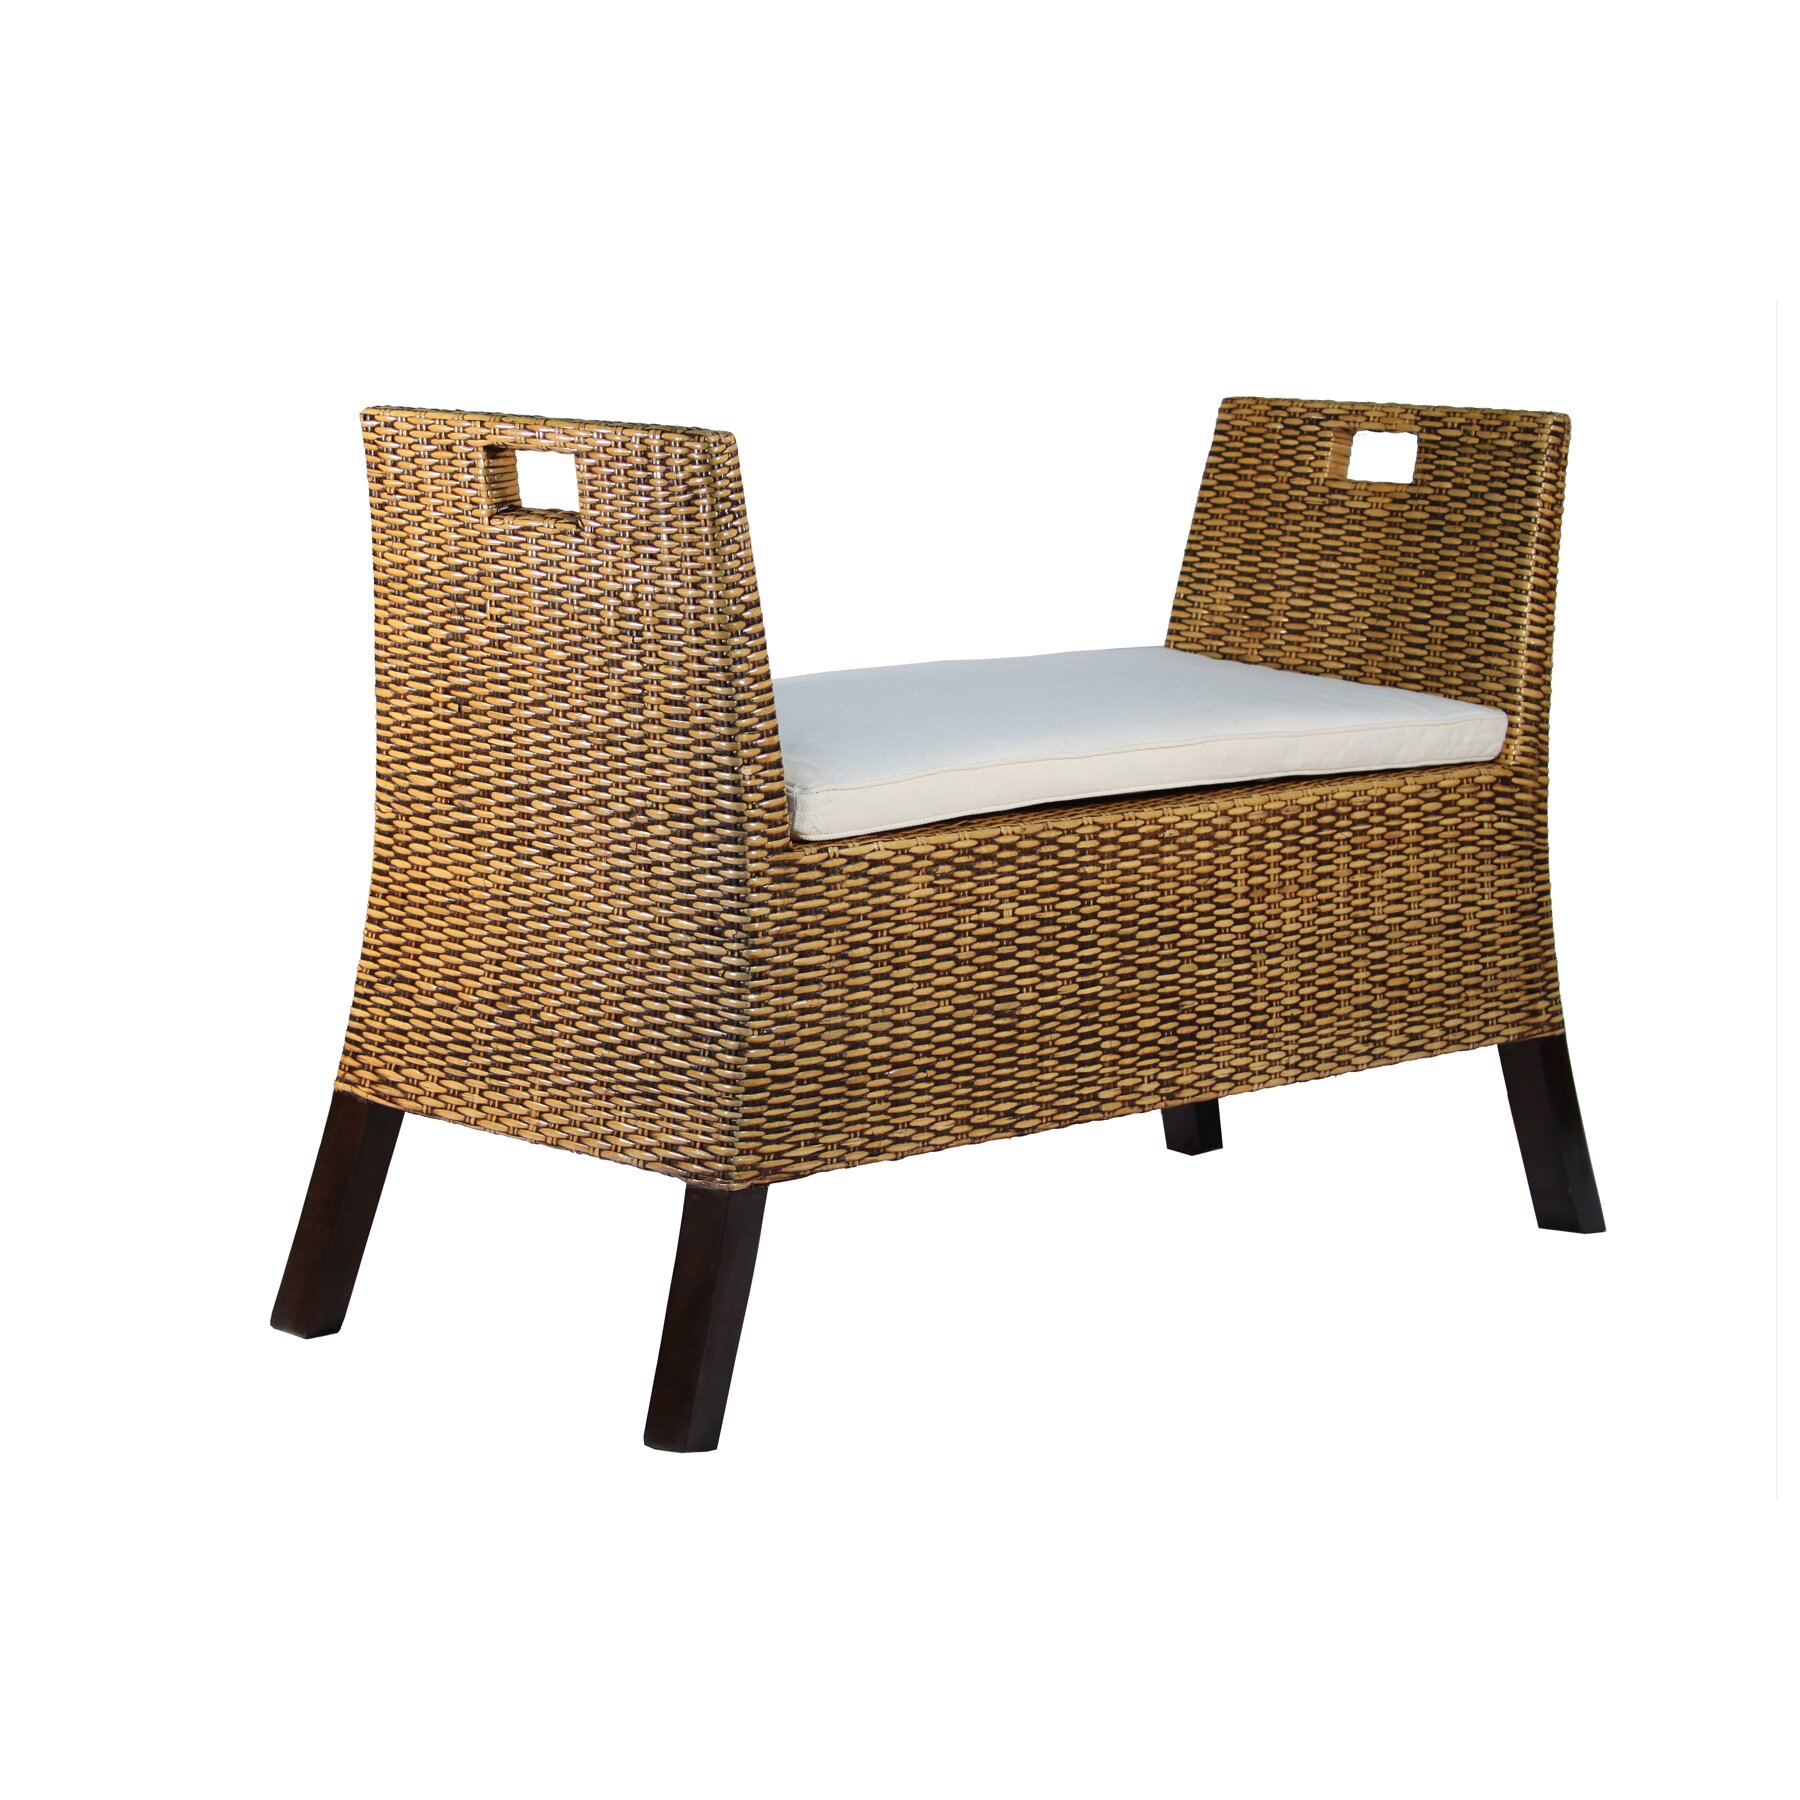 Ibolili Saka Rattan Bedroom Bench Wayfair